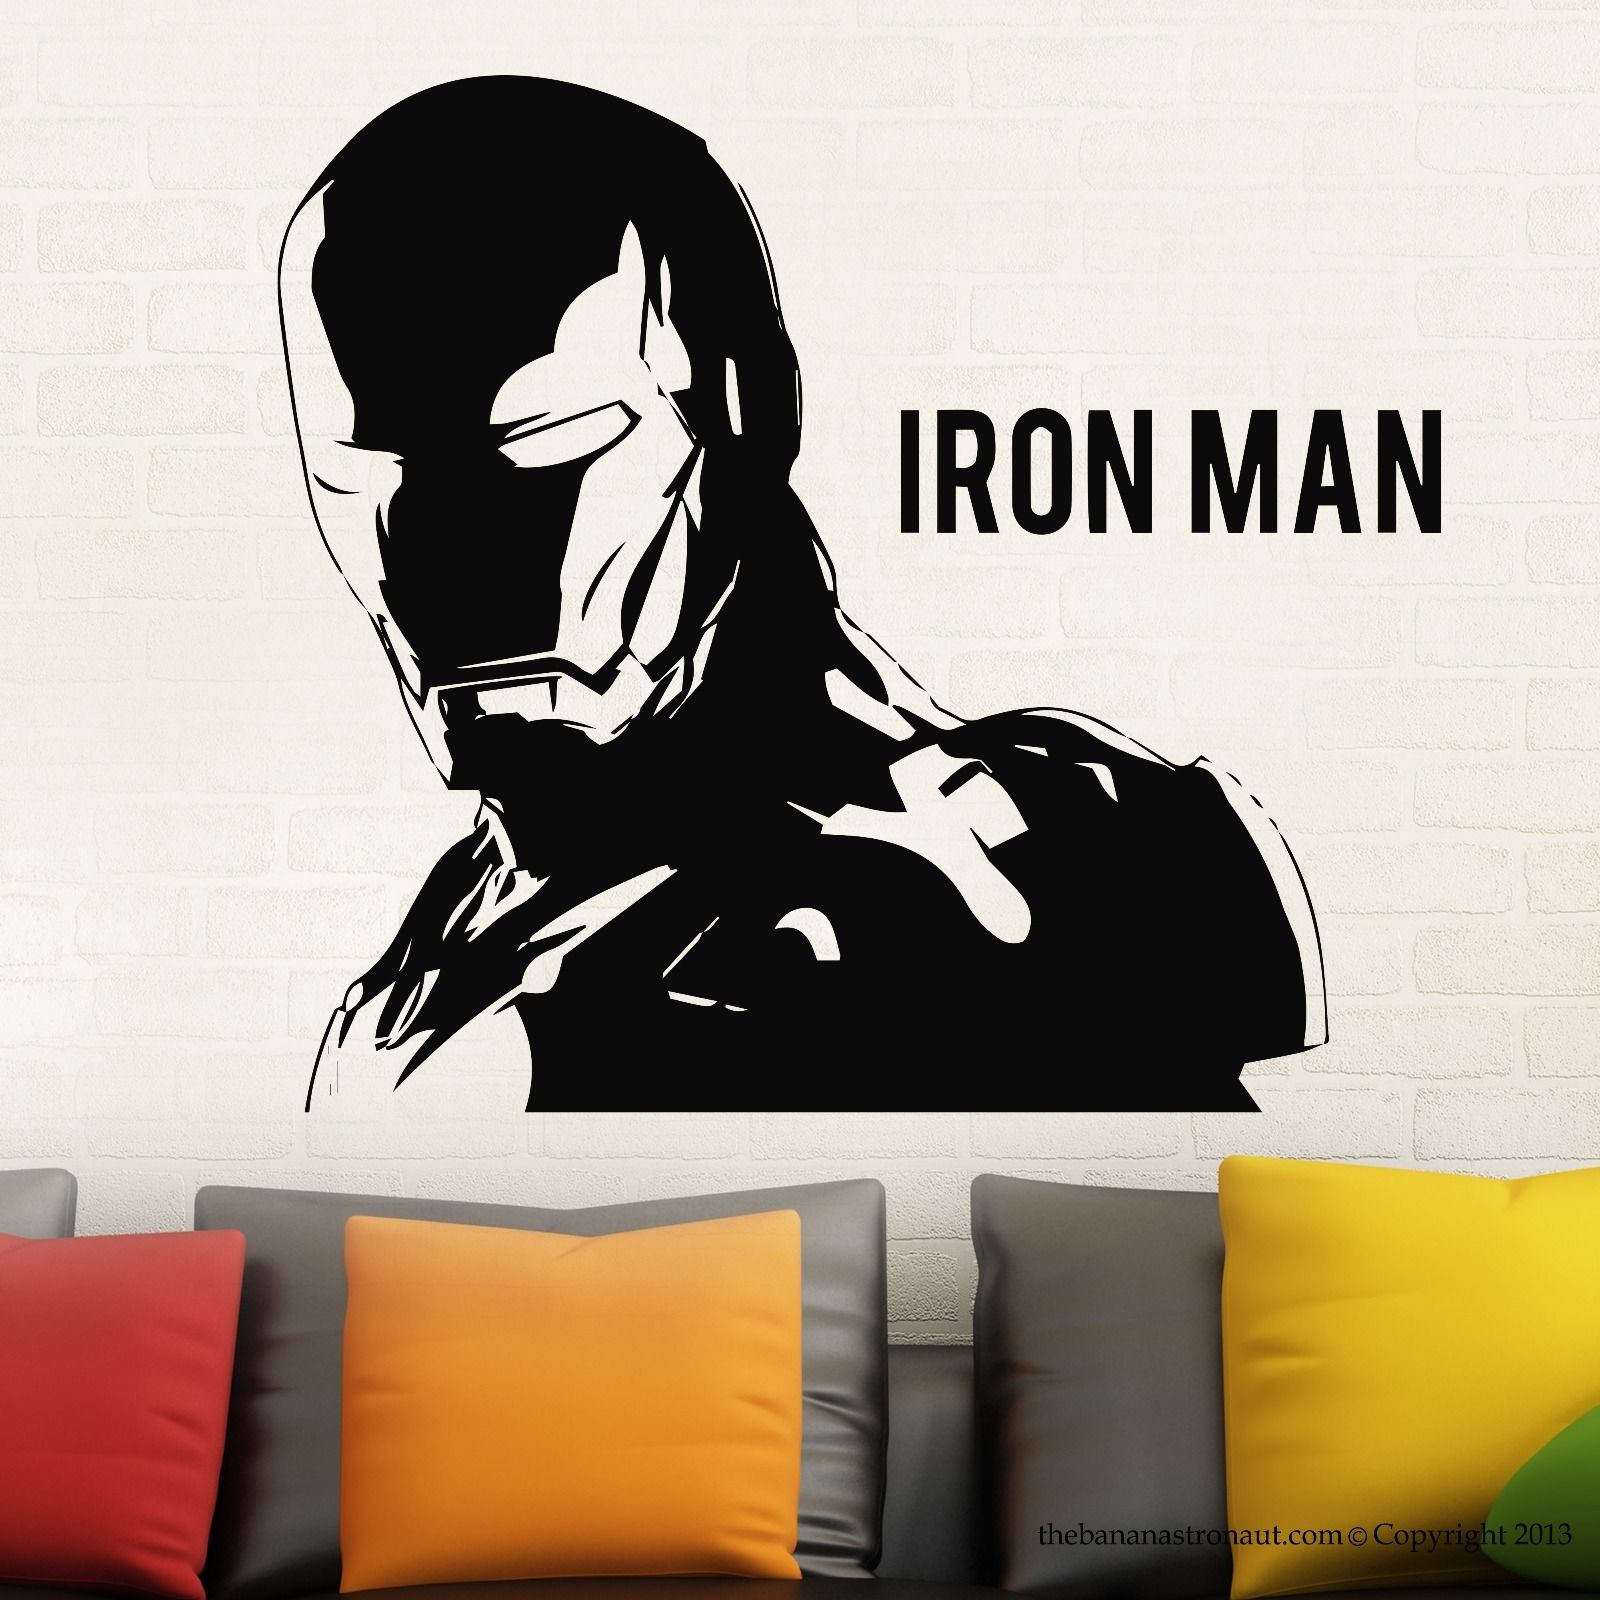 IRONMAN muur sticker Stickers Marvel Comics Decor moderne Stickers Vinyl zwart gratis verzending